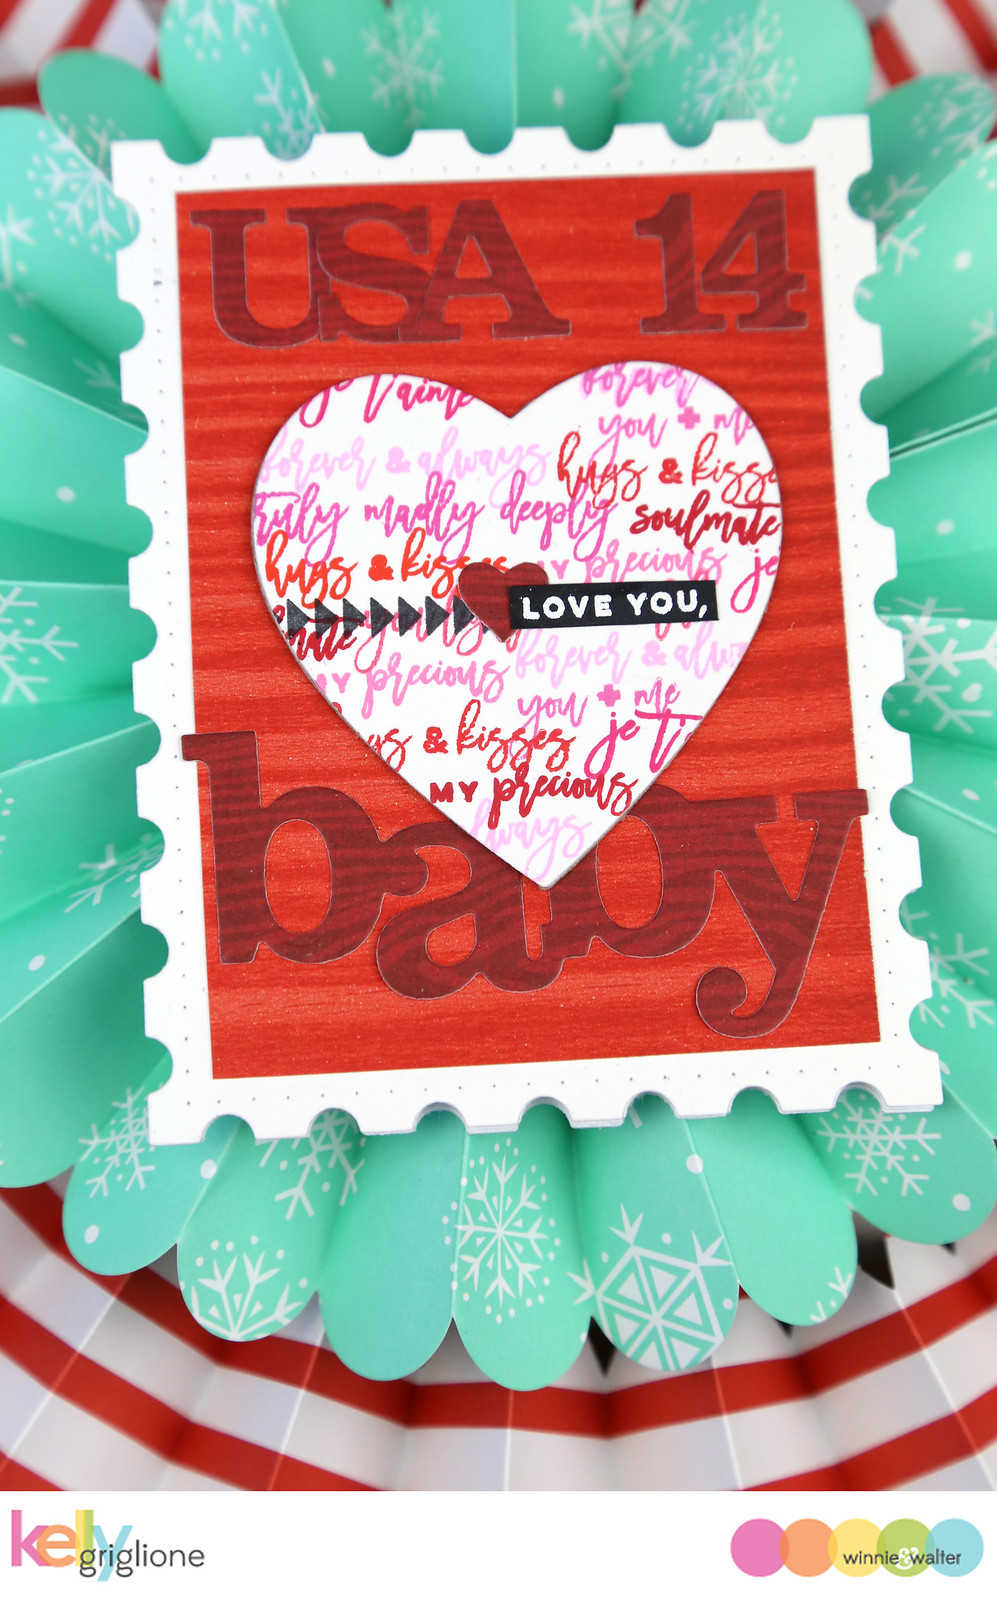 kelly_Love You Baby Card